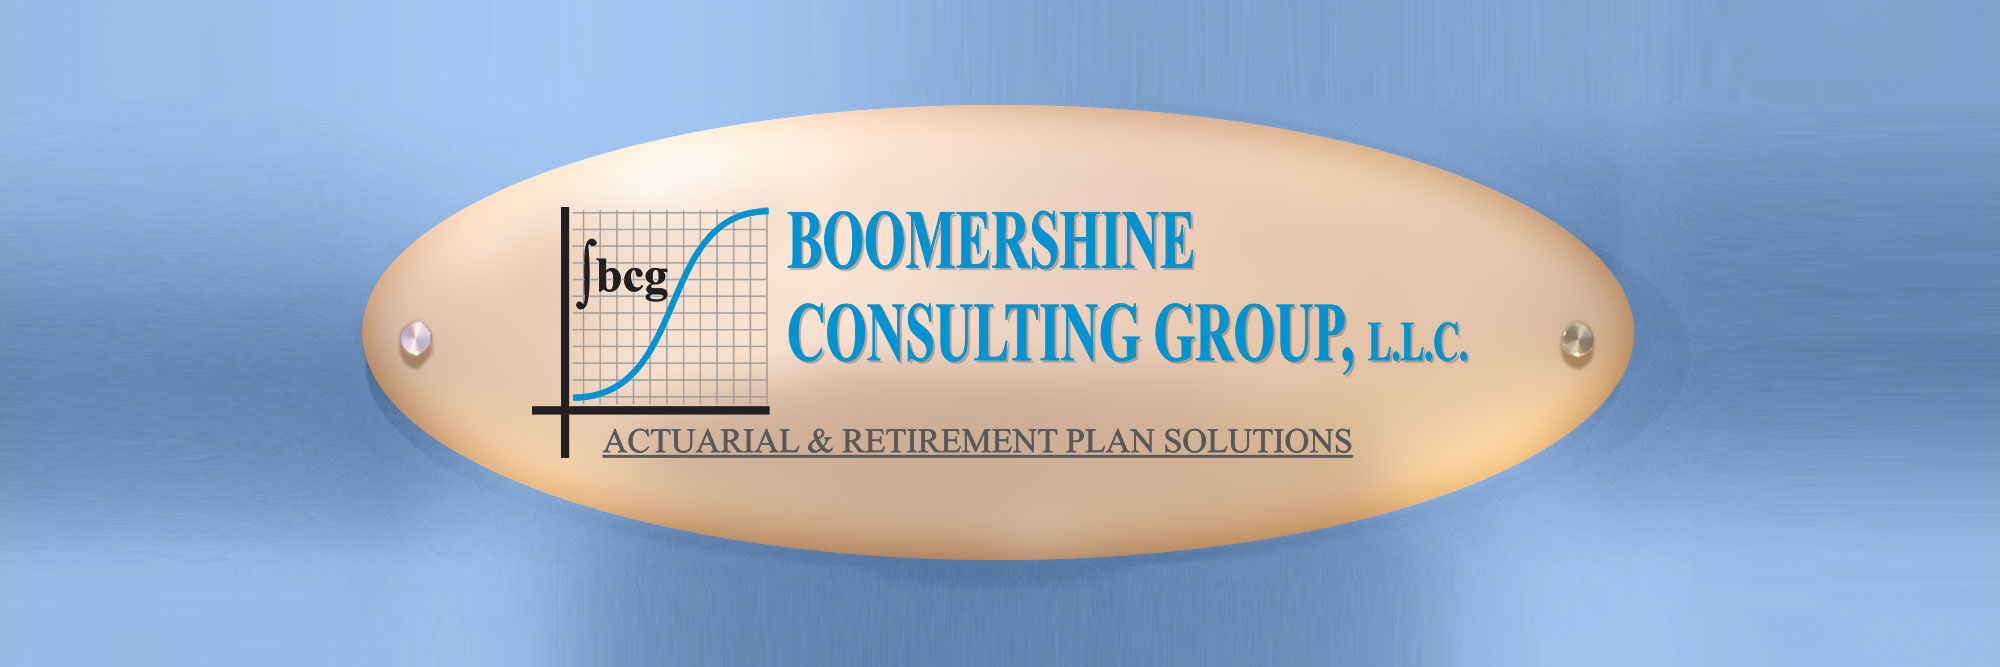 Boomershine Consulting Group